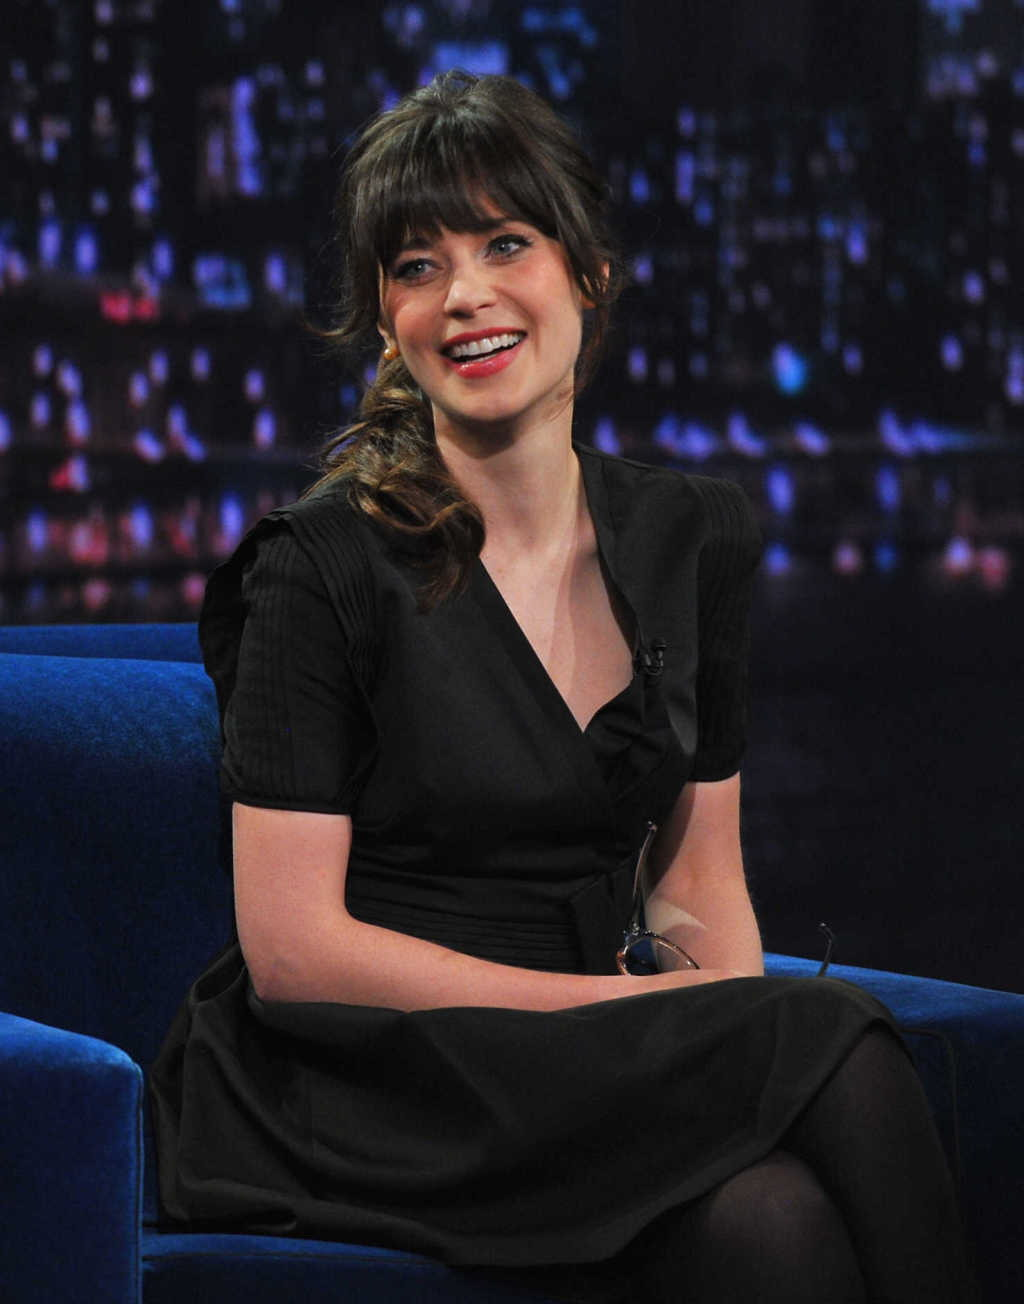 http://3.bp.blogspot.com/-iyoq2FfQSuA/UKsYs1gNsuI/AAAAAAABJCE/9njfXoX-BEw/s1600/Zooey_Deschanel-Late_Night_With_Jimmy_Fallon-New_York-11_19_2012-002.jpg